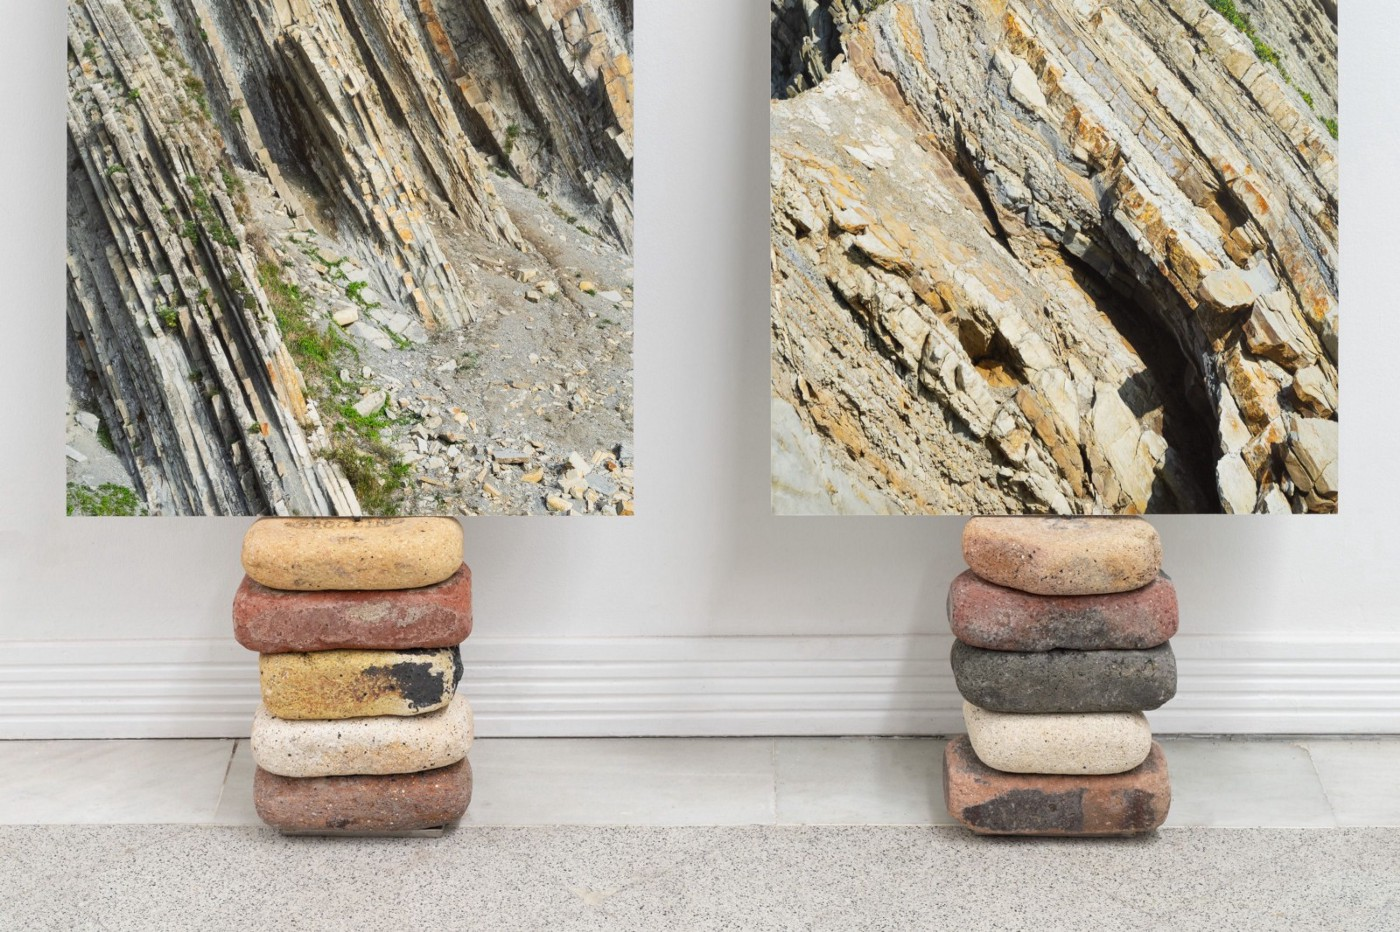 Two totems made of bricks and site-specific materials. They look like two piles of bricks and rocks of different colors with a picture of geological formations on top of each pile.